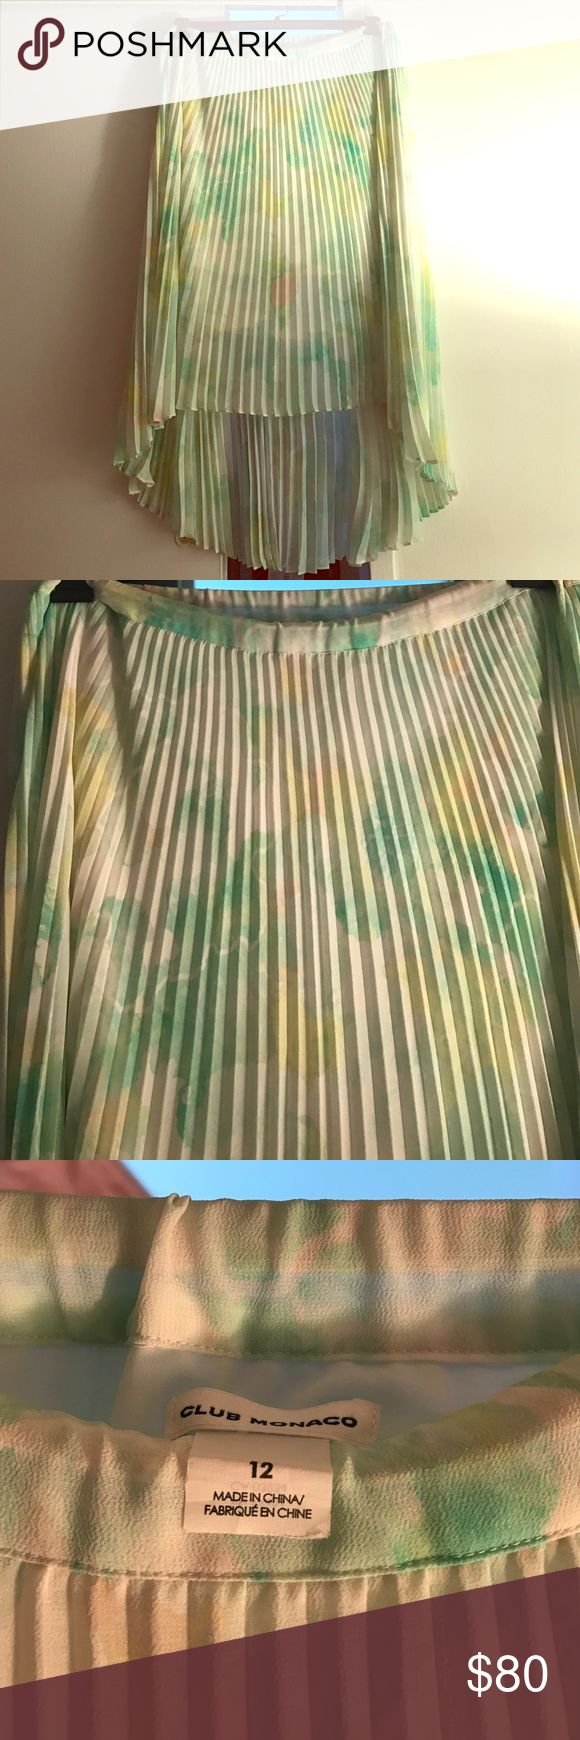 Club Monaco tie dye crepe skirt Beautiful and unique green with pink and cream accents.  High low skirt. So fun. Make me an offer. Elastic waste band. Club Monaco Skirts High Low